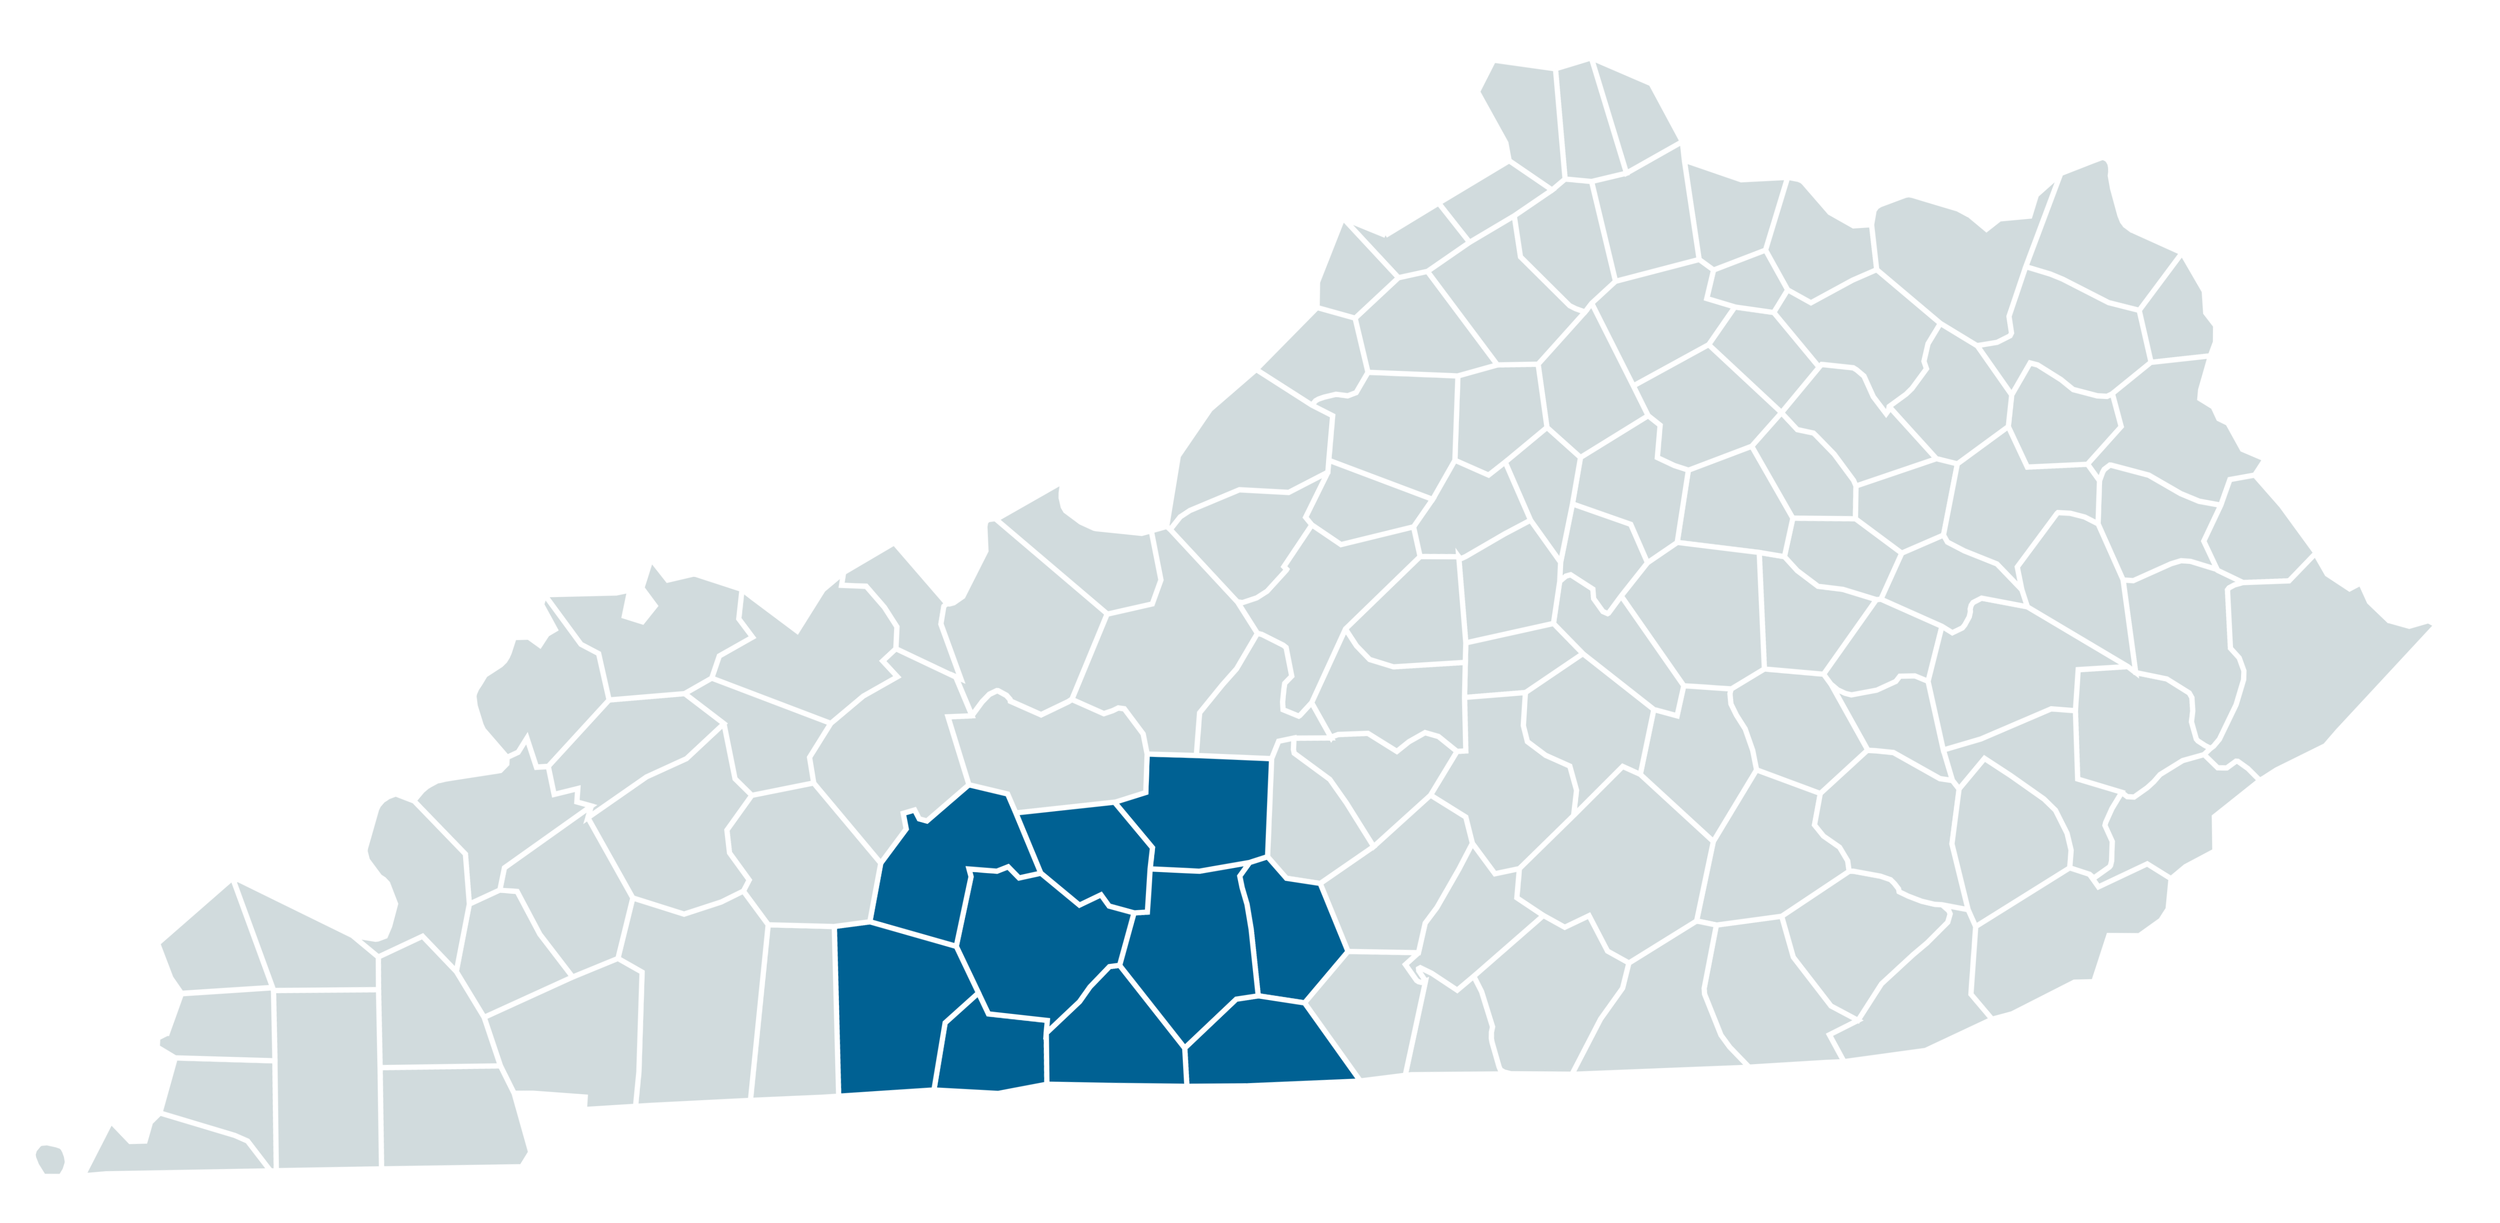 - Our 10 County Service Area in South Central Kentucky